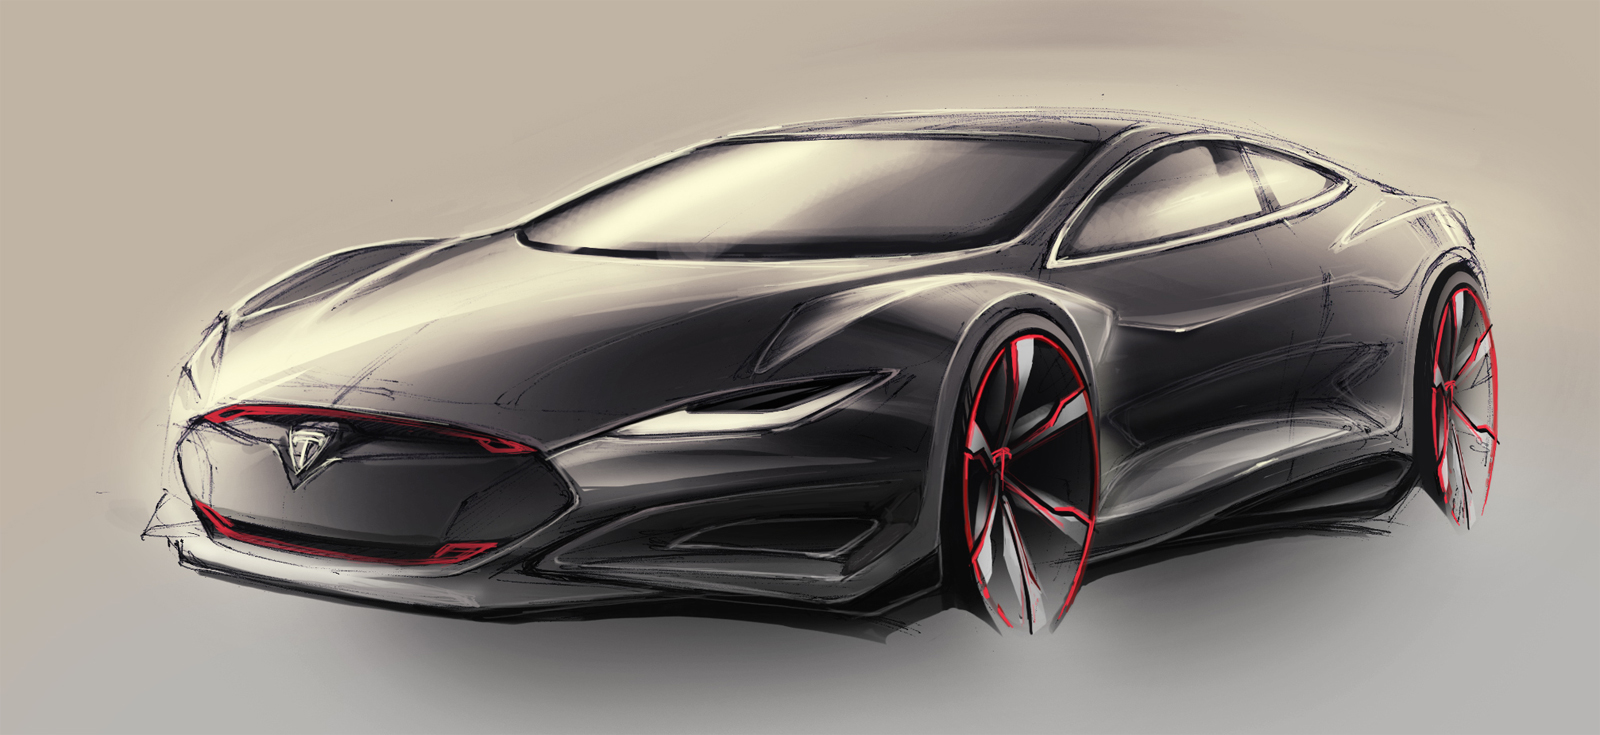 Design of tesla car -  Conservative Design For The Car Itself I Used A More Spacius Body Type Like A Sportback It May Not Be Everyone S Taste And Hopefully The Production